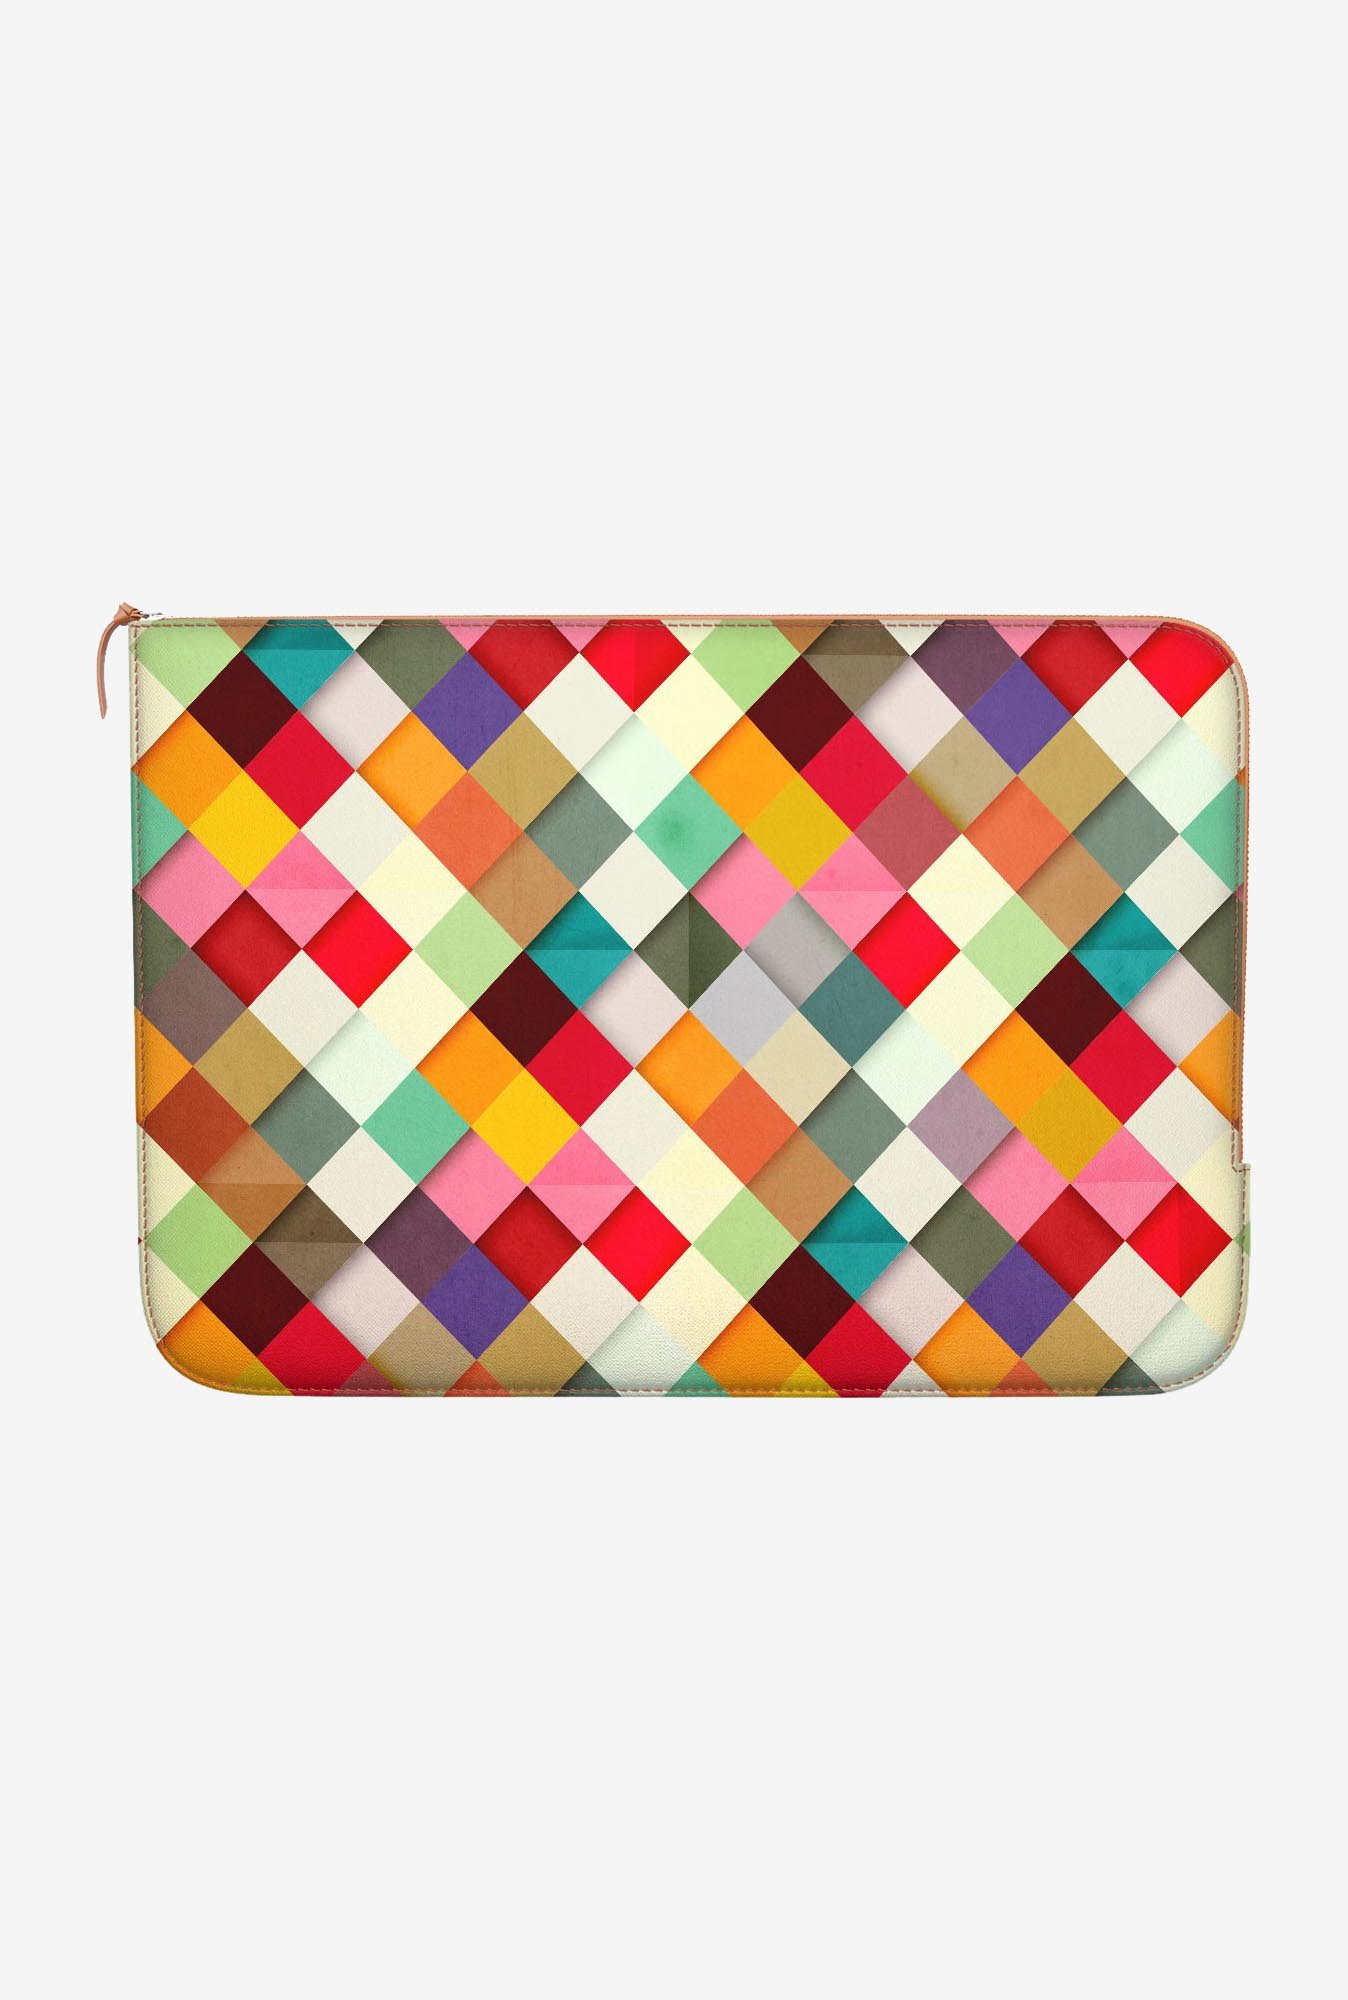 DailyObjects Pass this On MacBook Pro 15 Zippered Sleeve